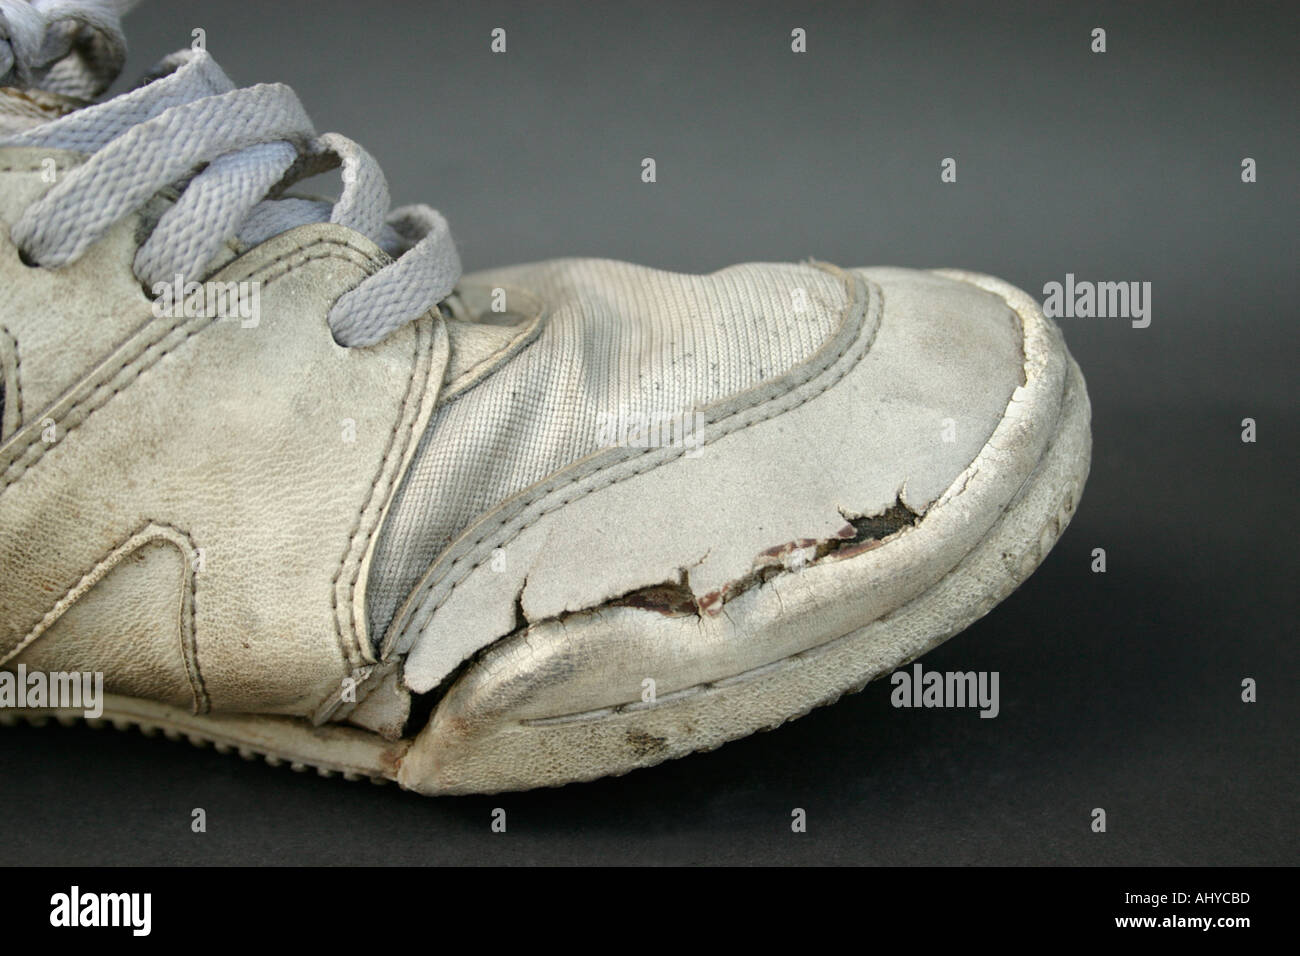 side view of dirty worn old sneakers or running shoes Concept comfort well used durability - Stock Image